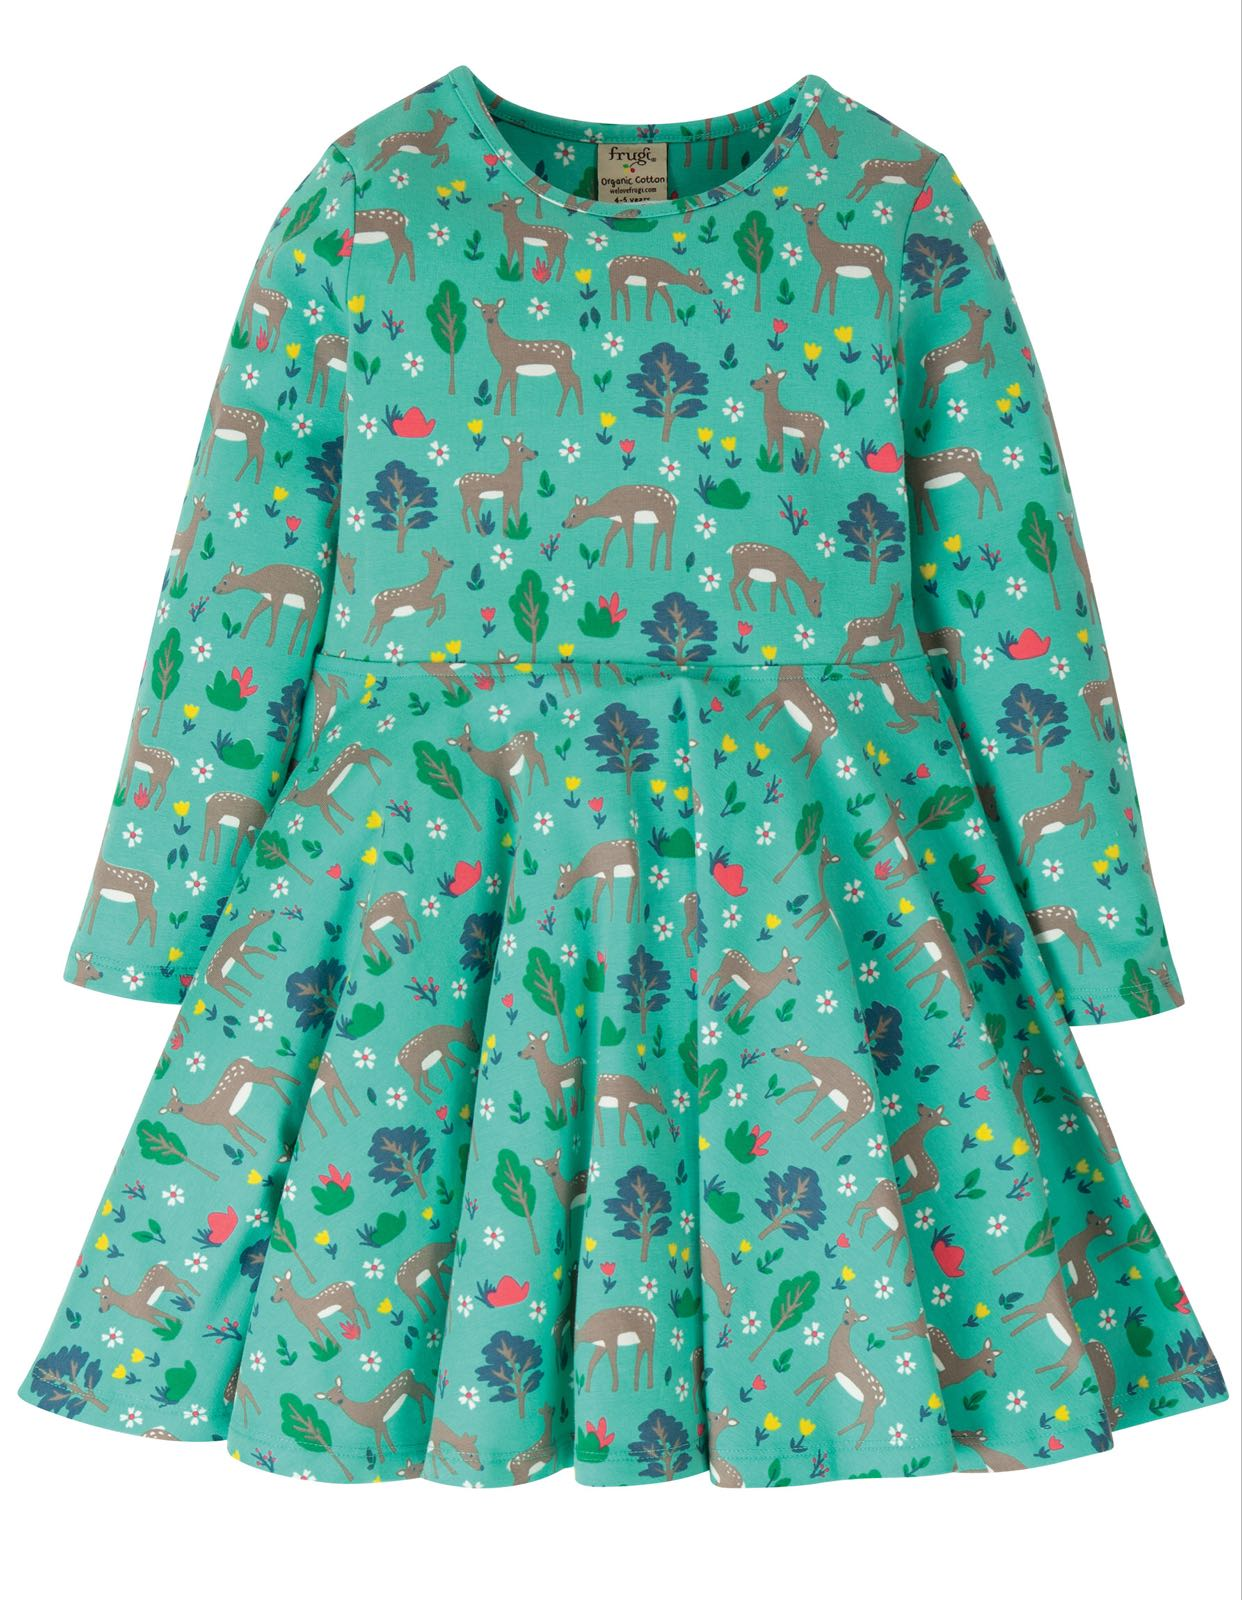 Frugi Sofia Skater Dress, Pacific Aqua Sika Deer